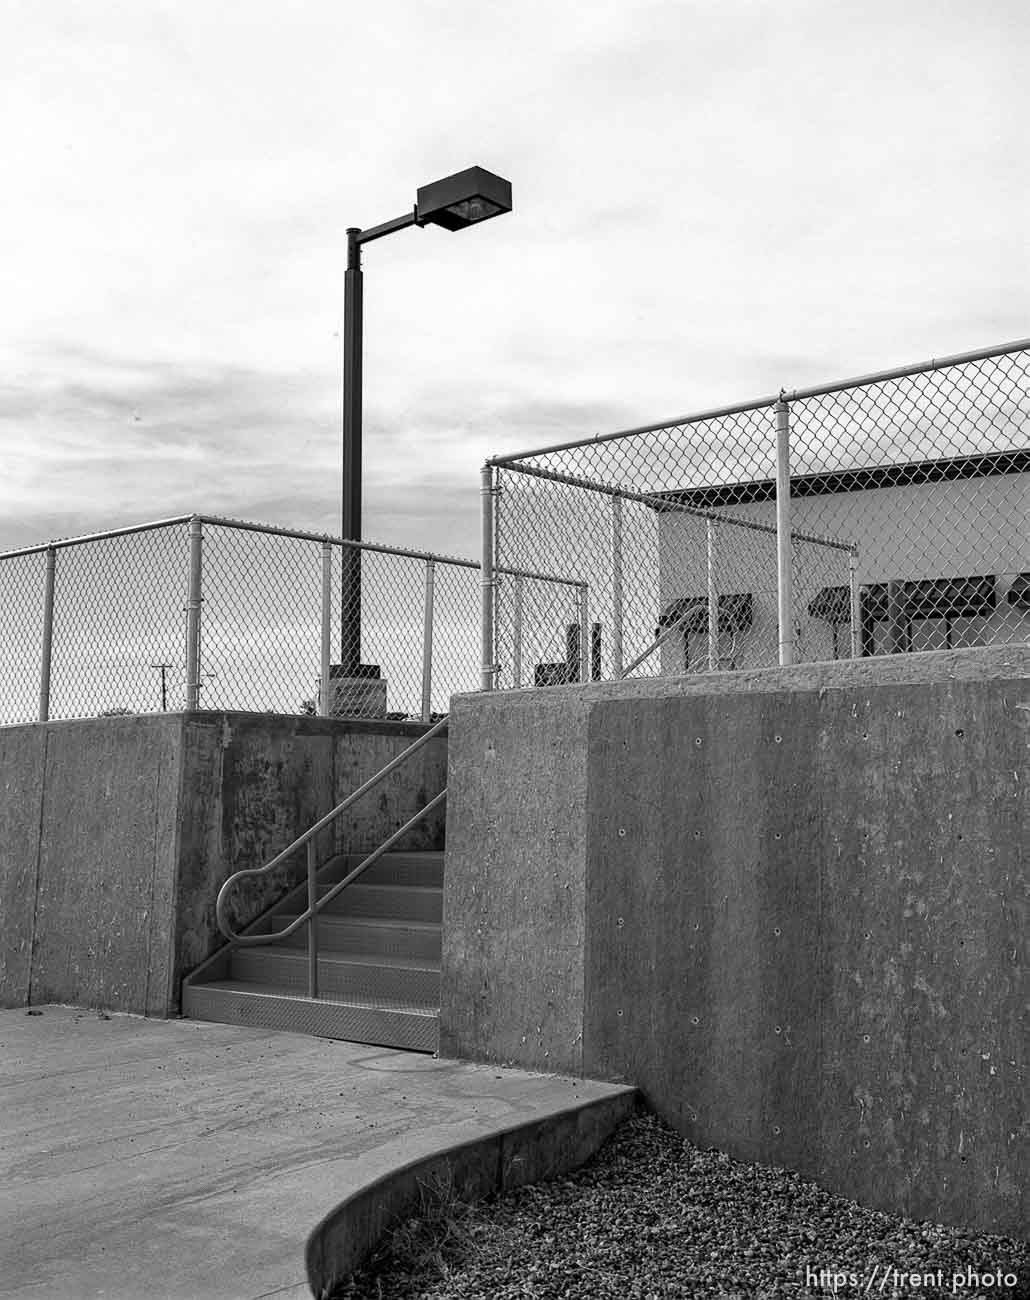 Stairs, chain-link fence, streetlamp in motel parking lot.